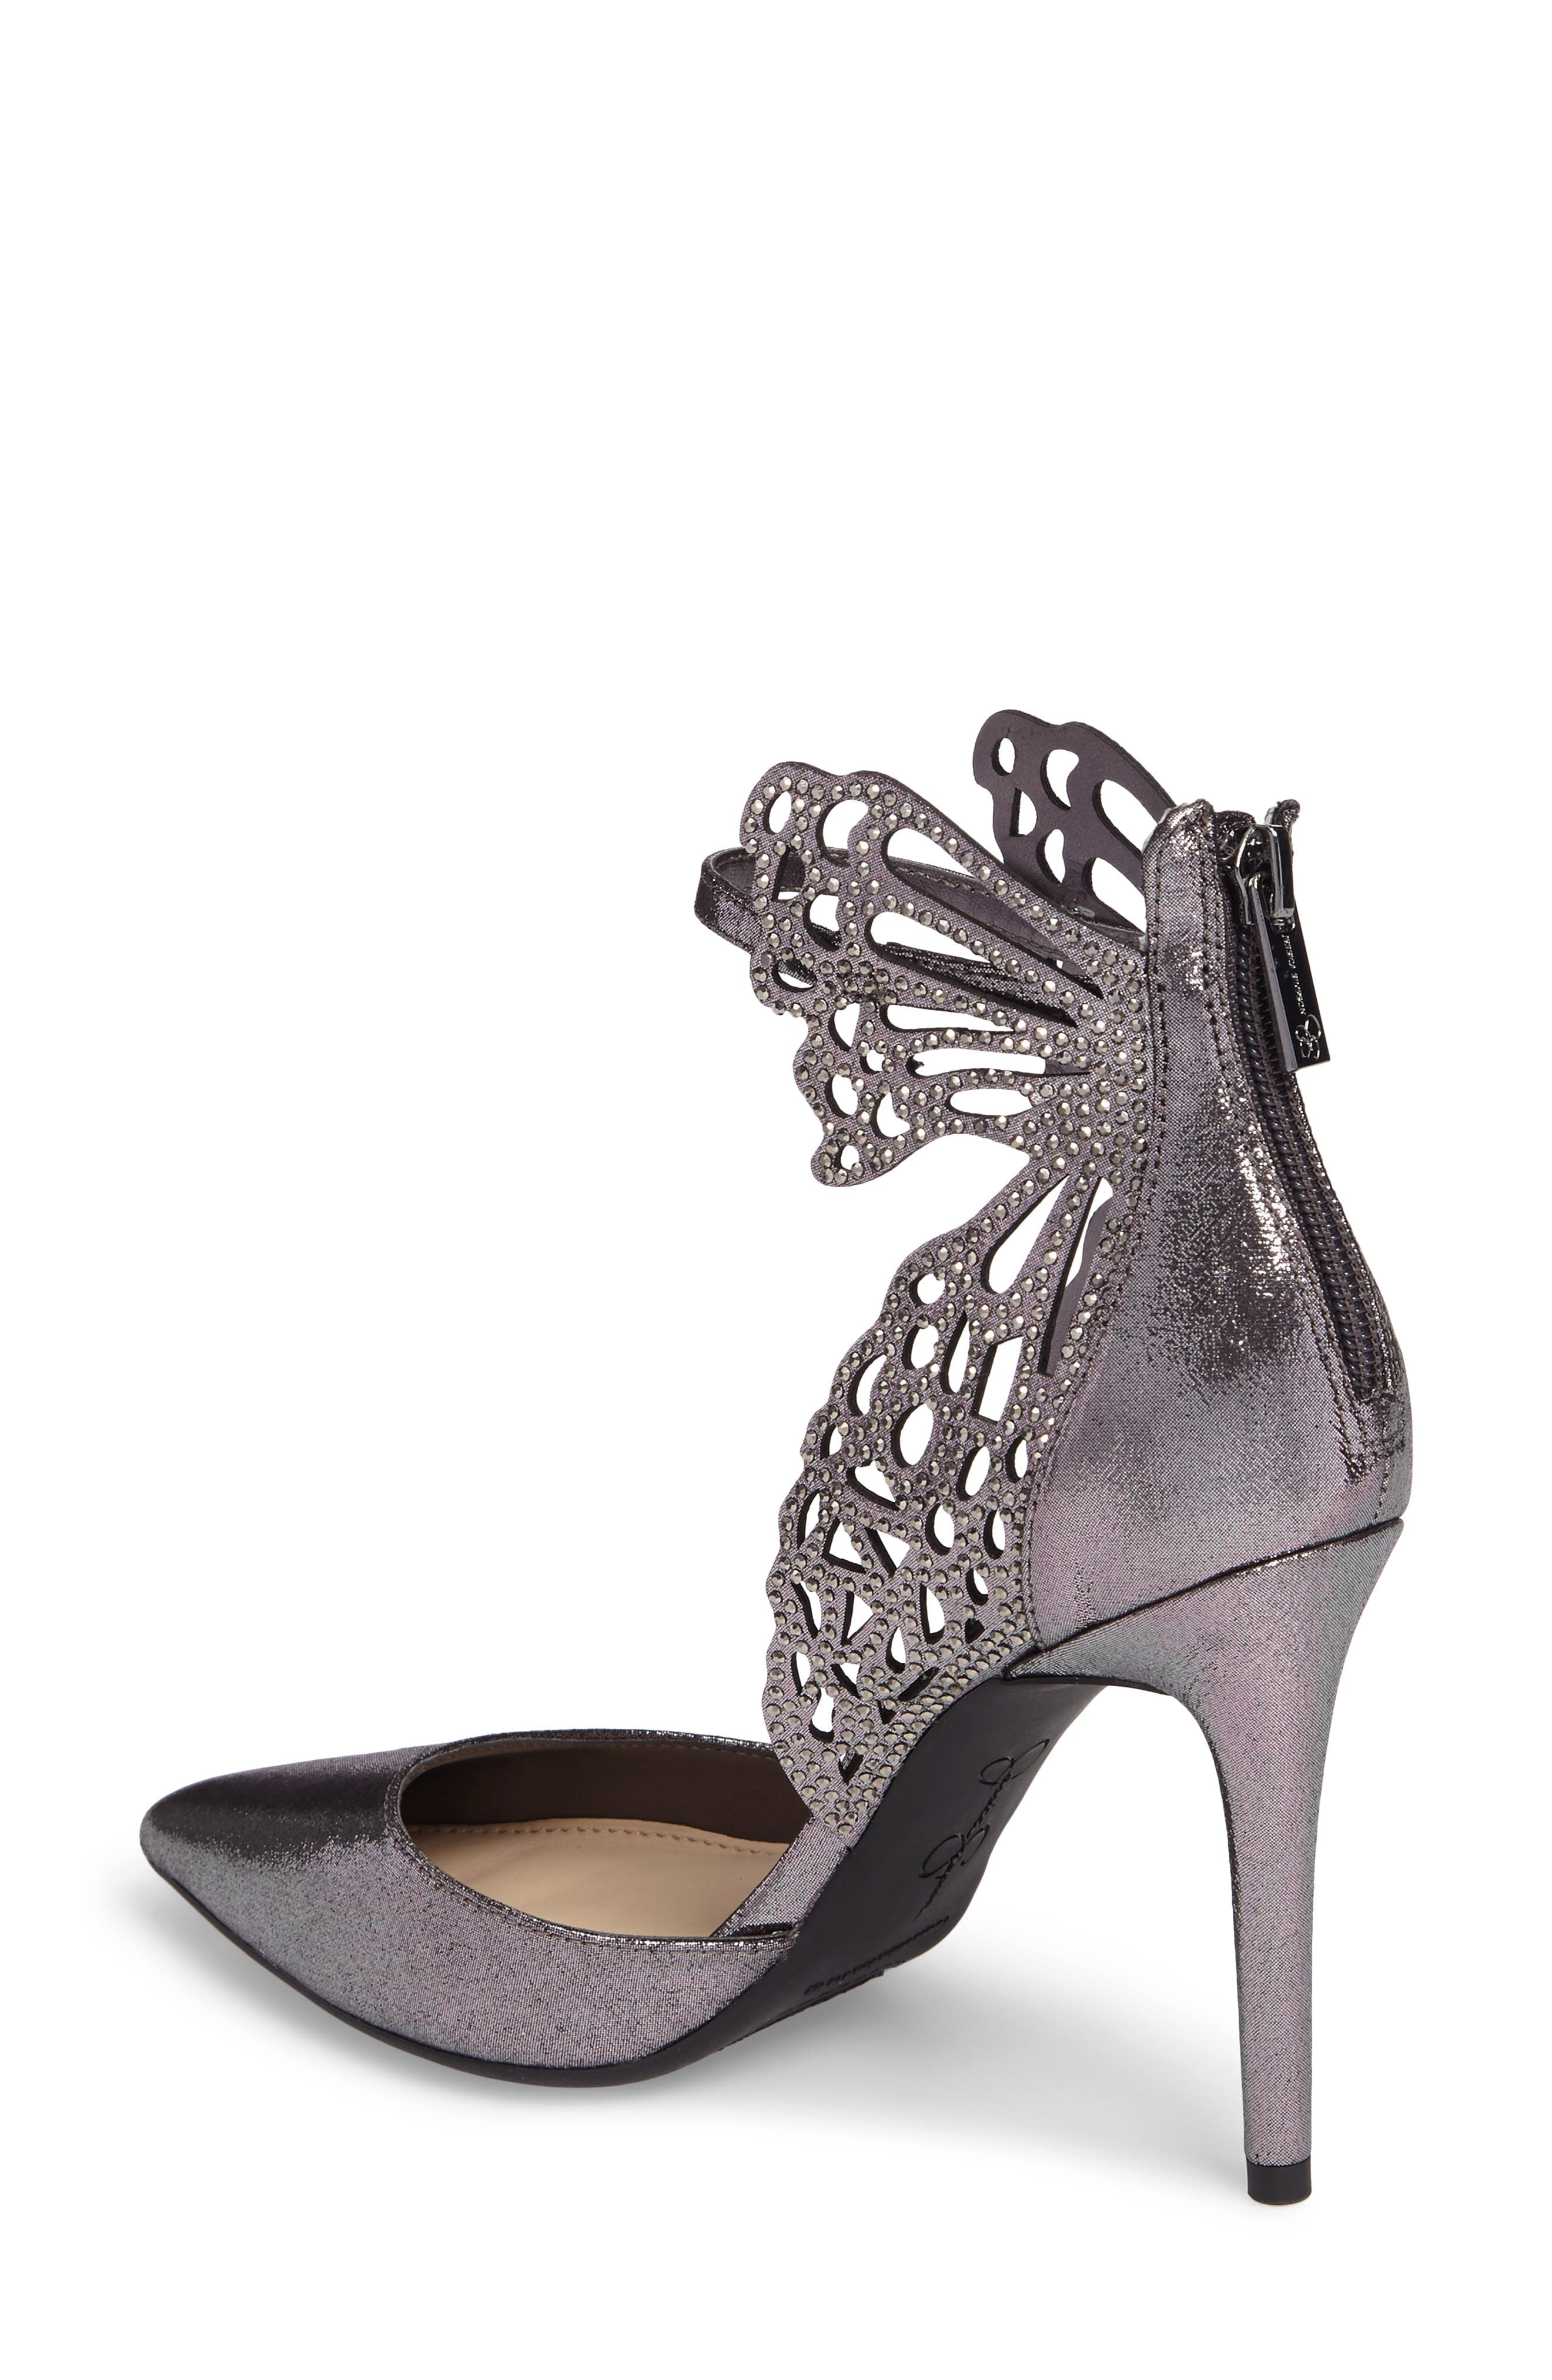 Leasia Butterfly Pump,                             Alternate thumbnail 2, color,                             Pewter Satin